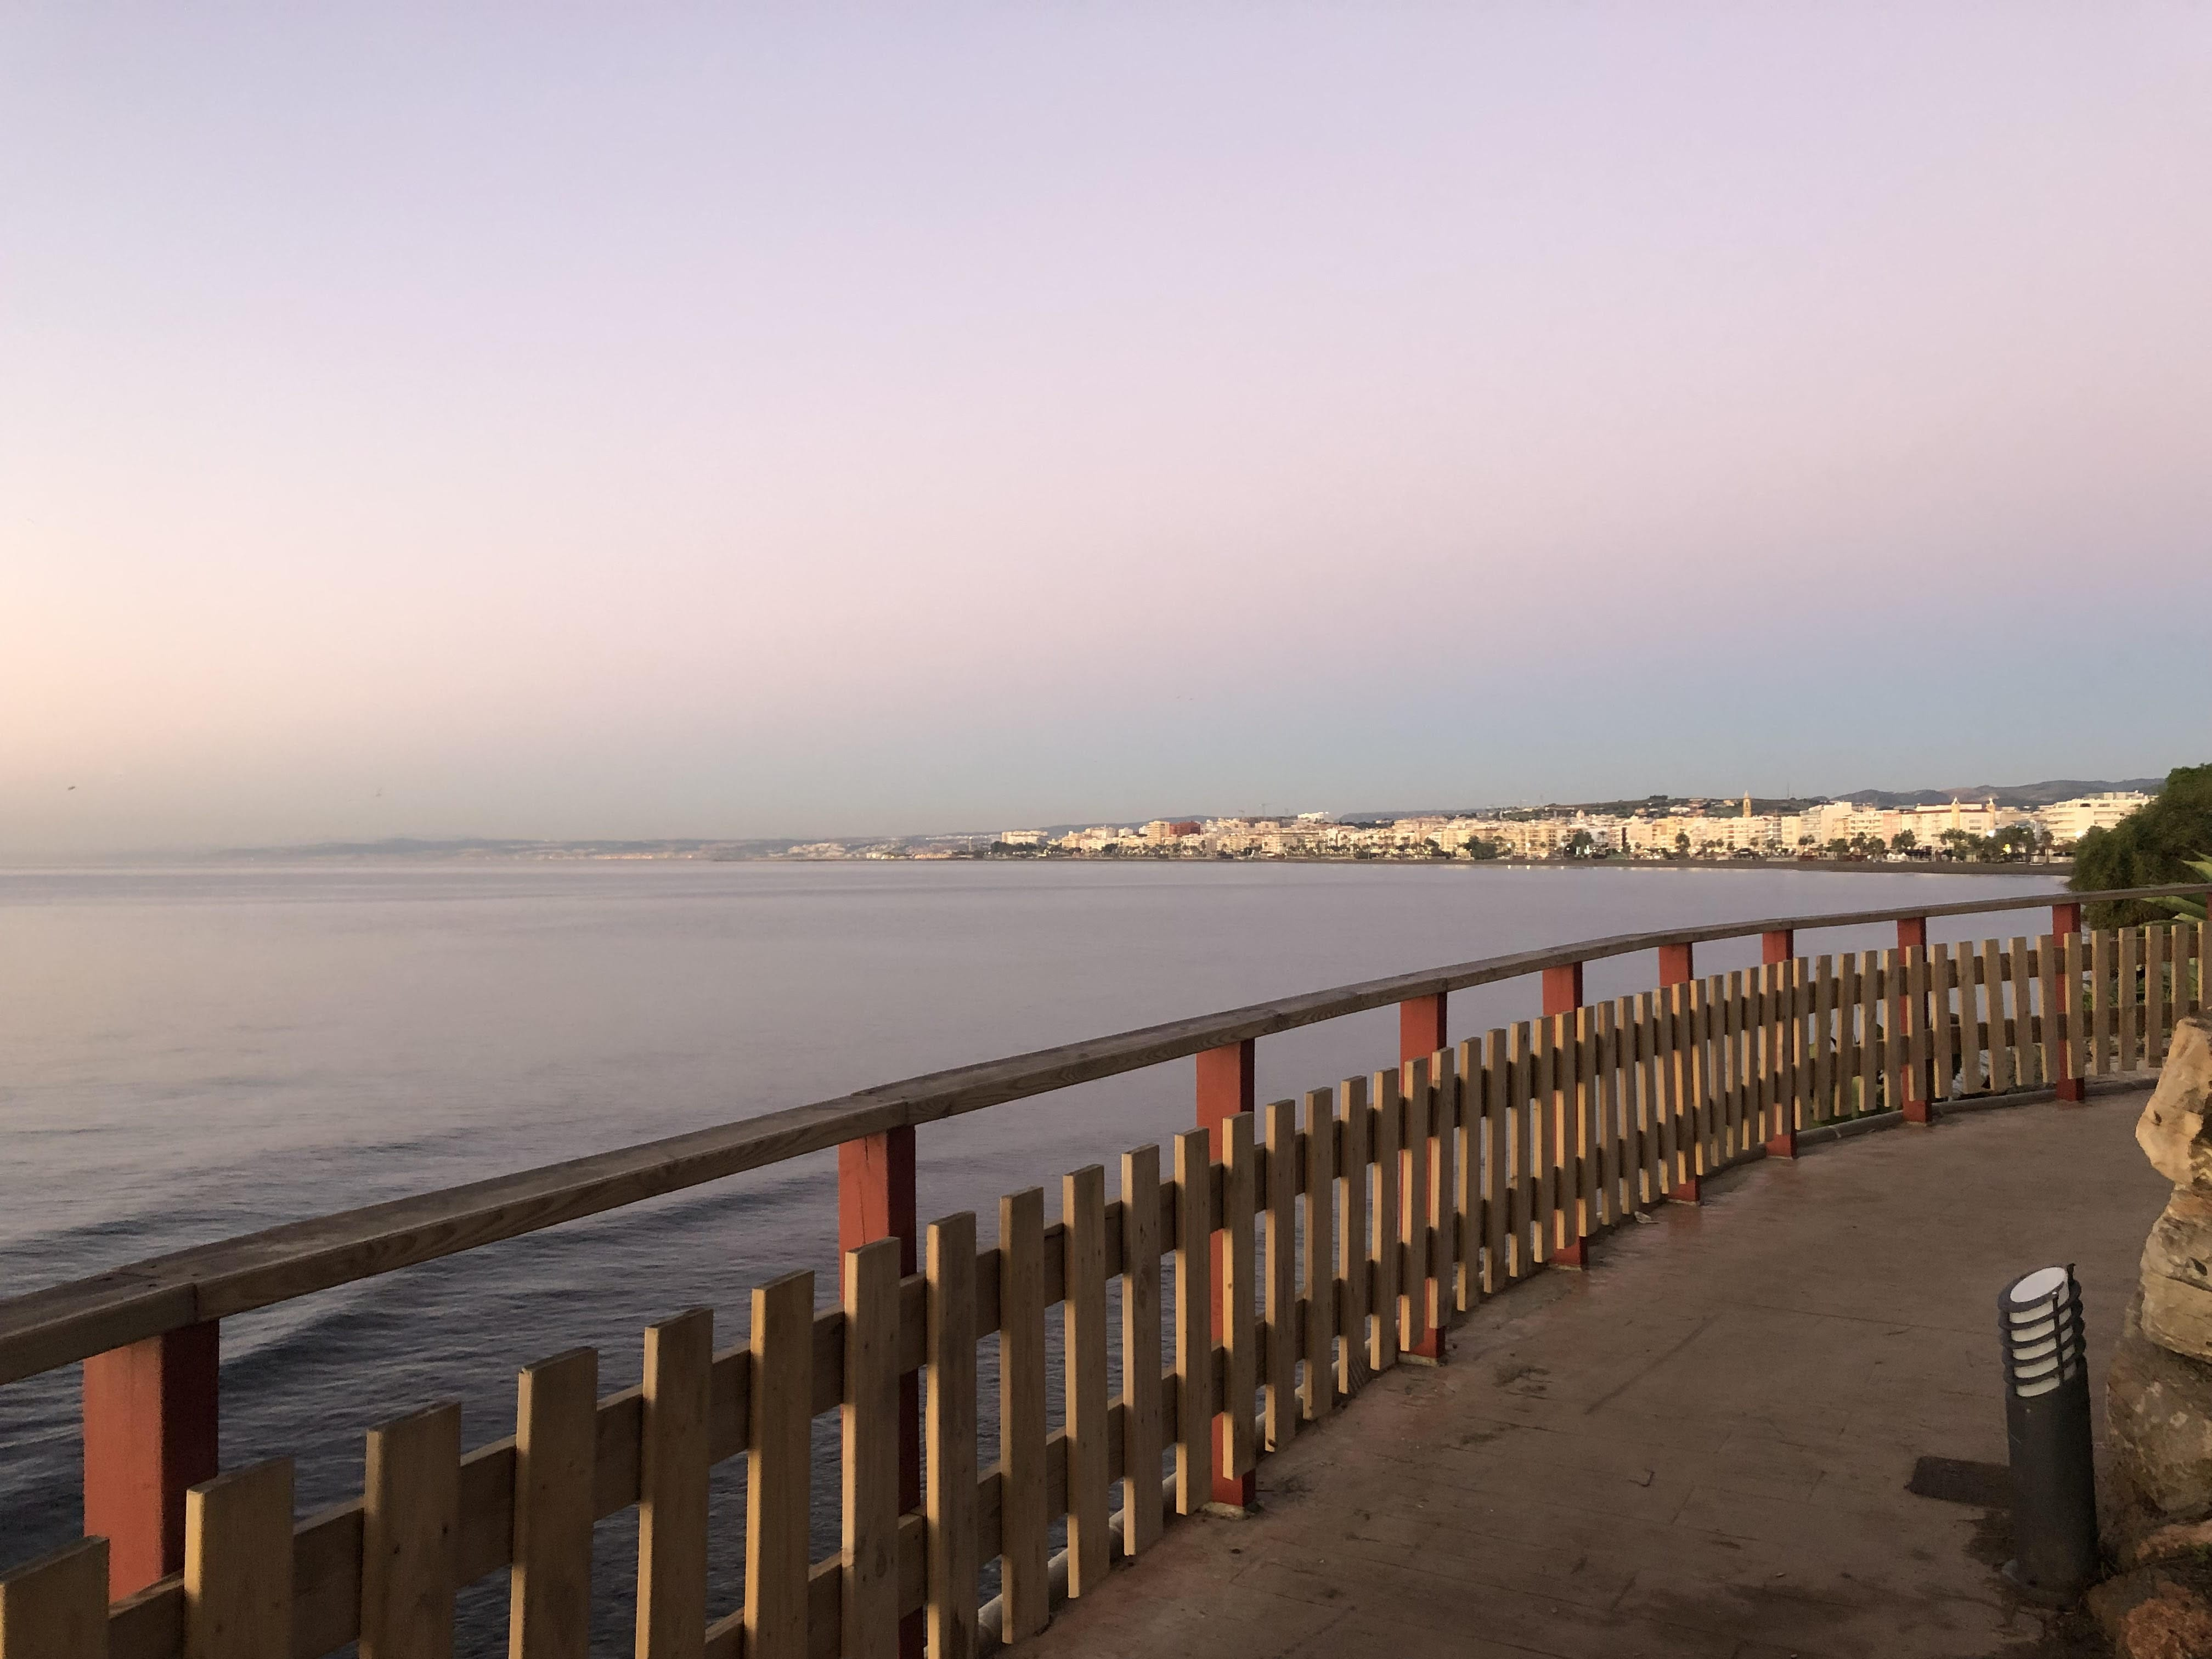 New infrastructure upgrades for Estepona